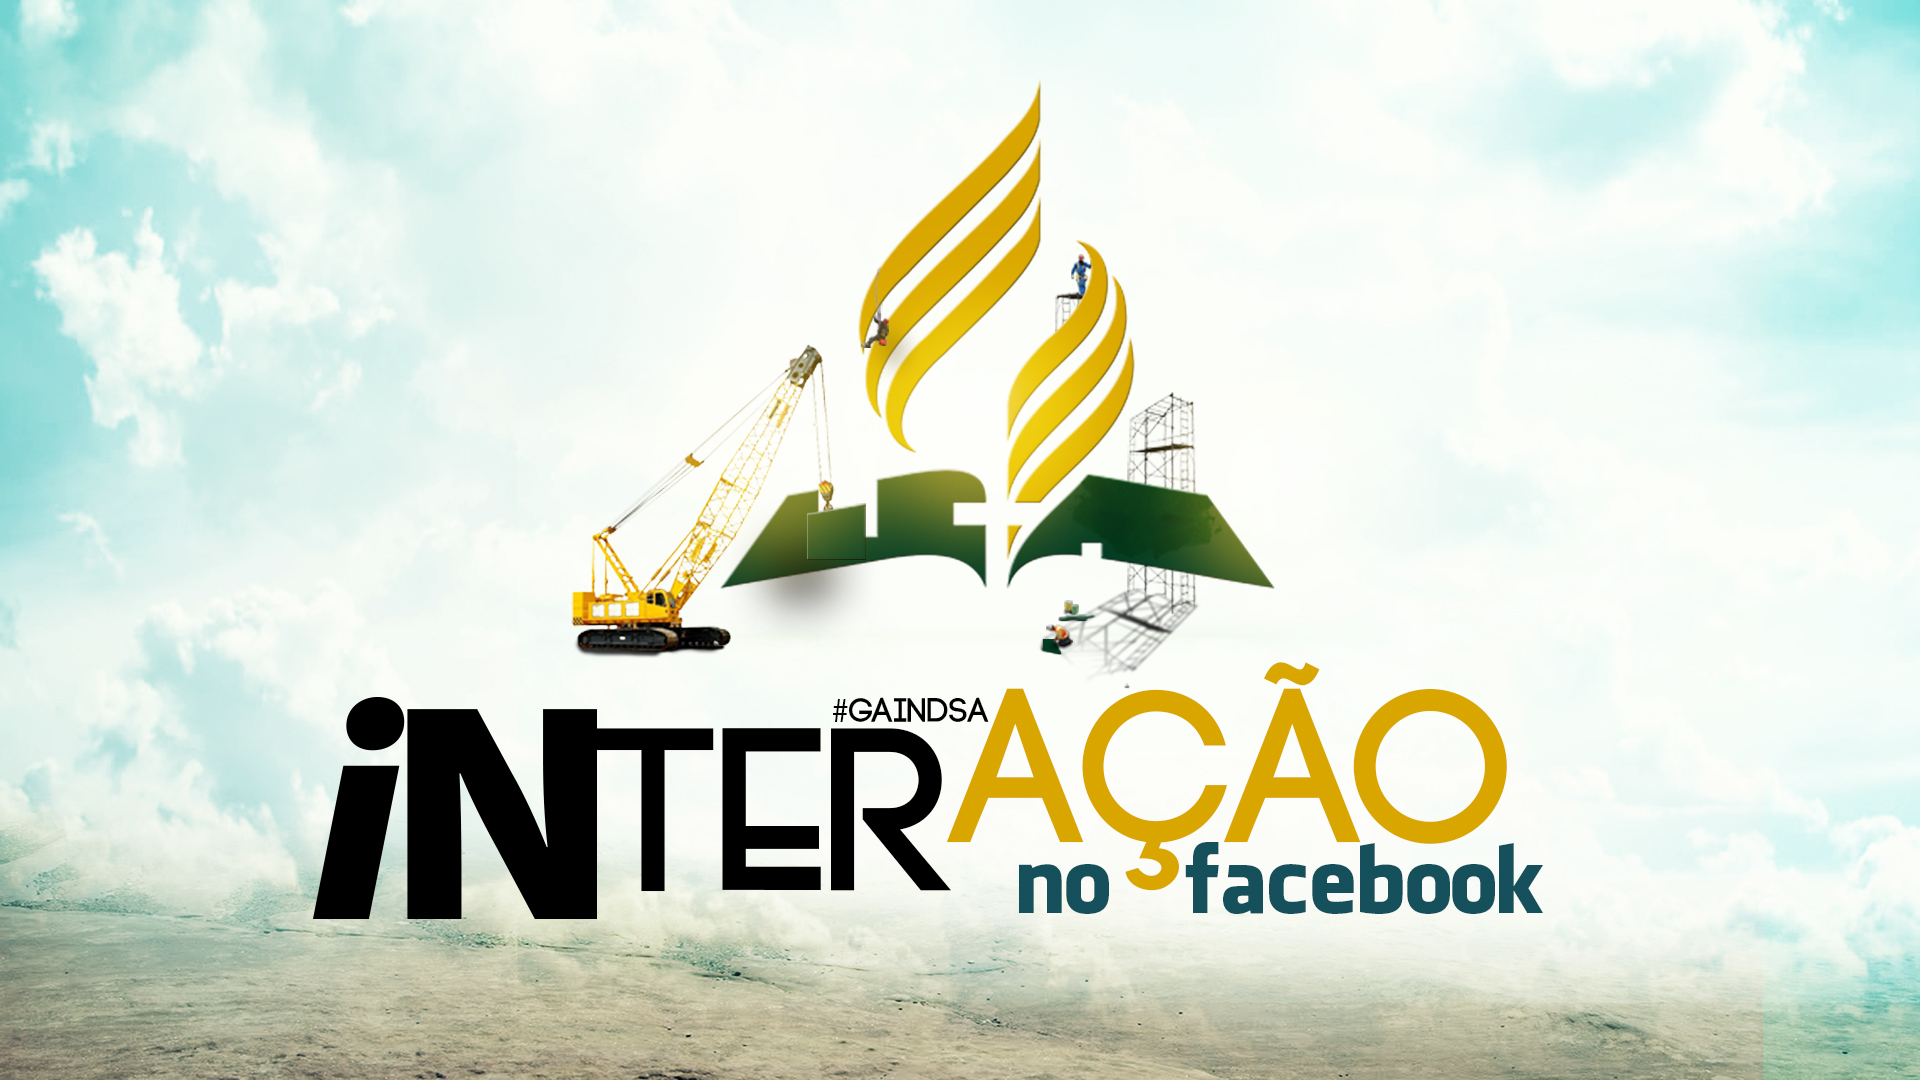 interacao-facebook